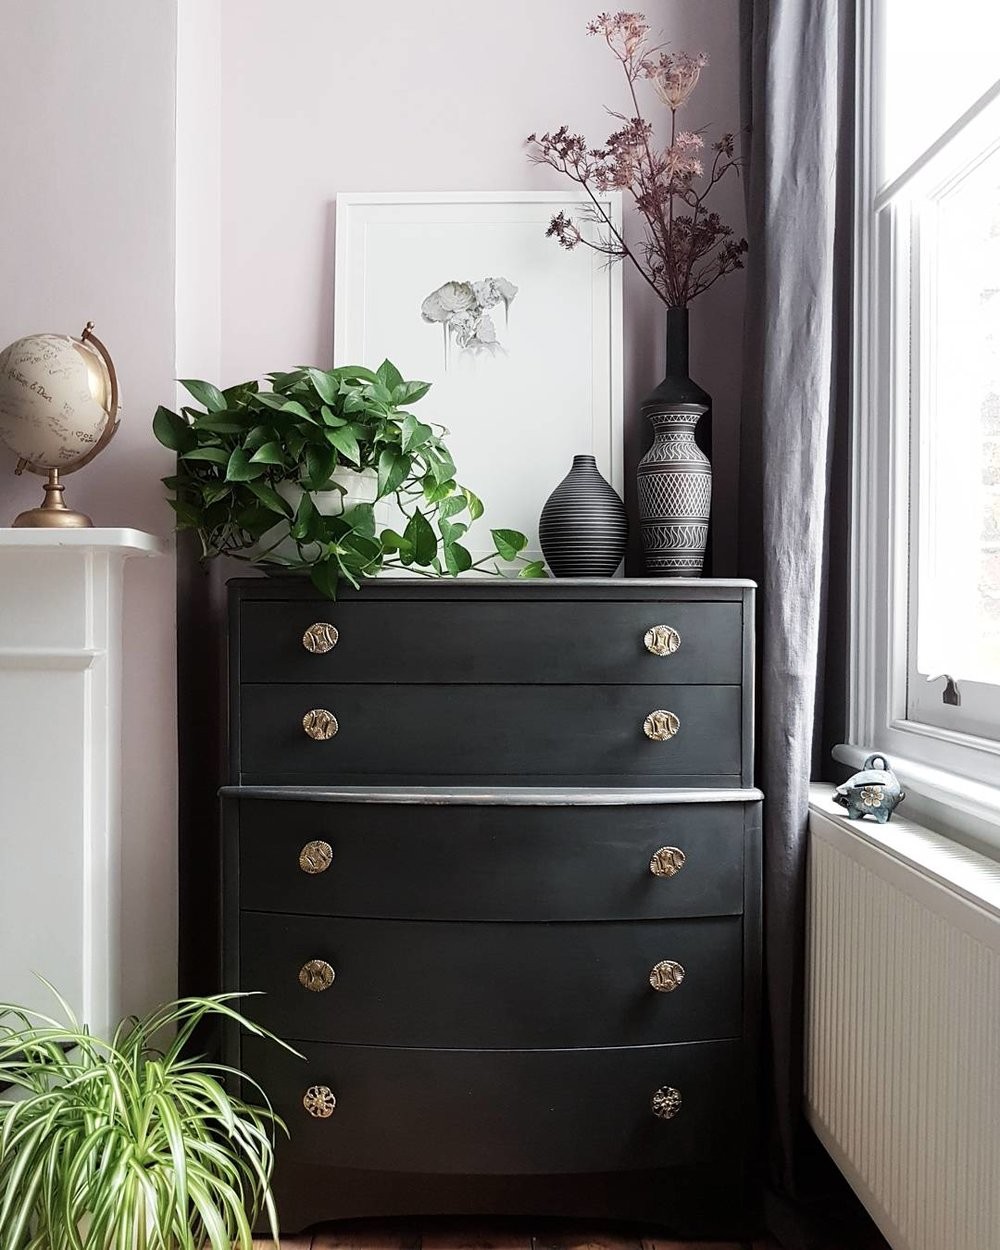 Drawers painted in 'Graphite' Annie Sloan ..... Print - (By Simon Webb) Curious Duke Gallery ..... Round vase - Abigail Ahern